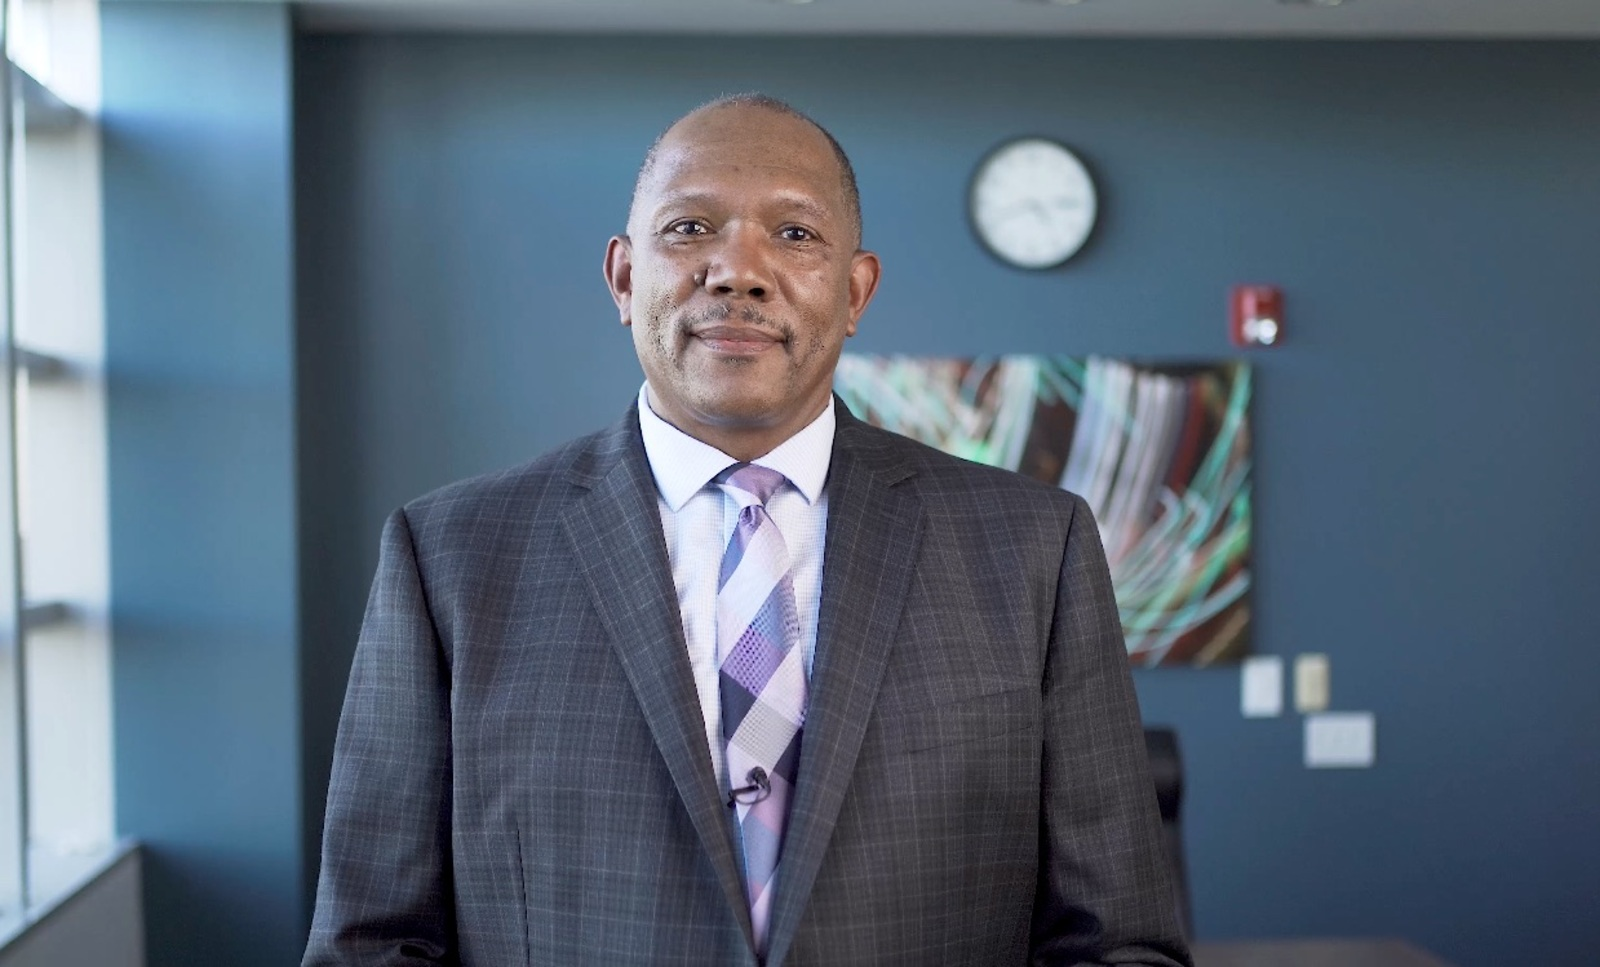 Eral Burks - CEO, Minority Executive Search